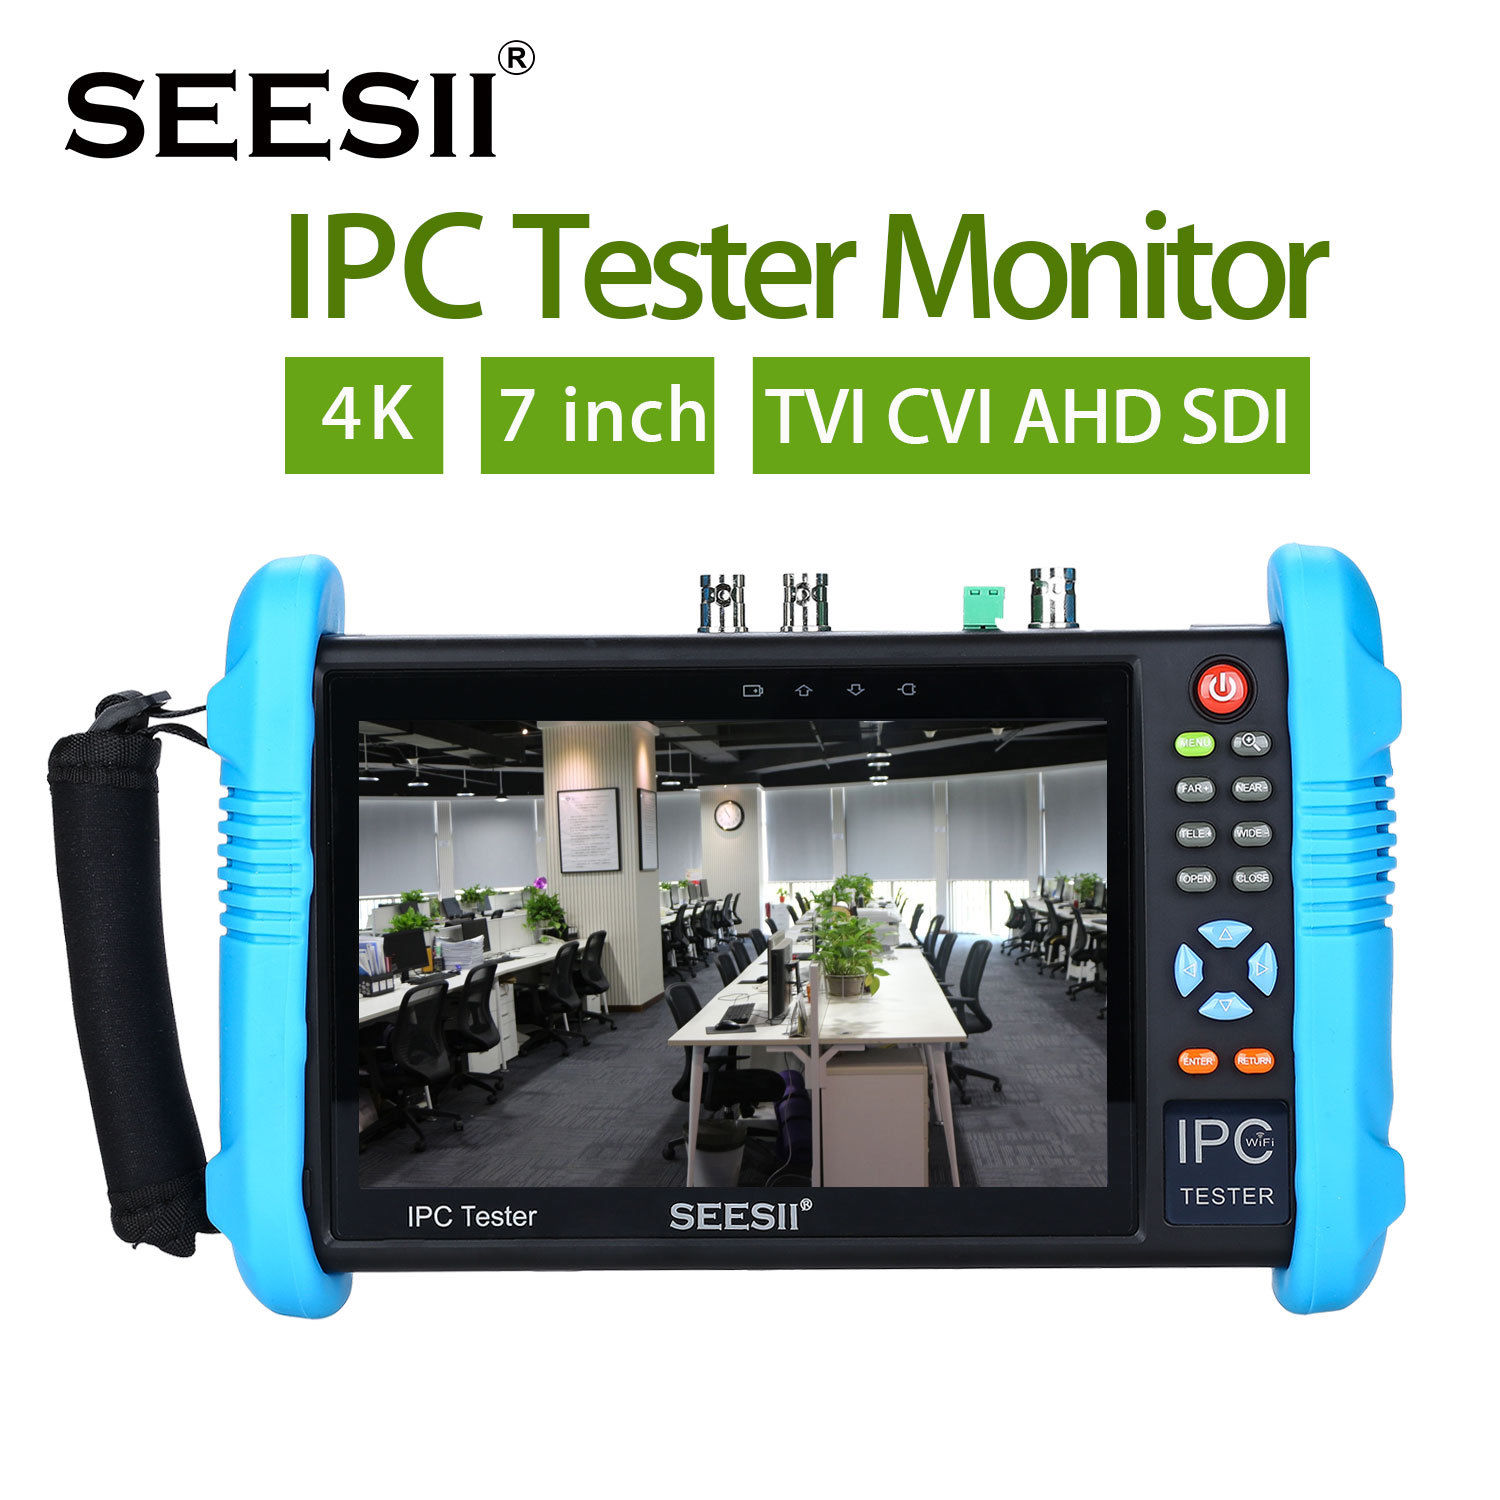 SEESII 7Touch Screen H.265 IP Camera Tester 4K 1080P IPC Camera CCTV TVI CVI AHD SDI CVBS HDMl PTZ Control Analog Video Test 7inch capacitive touch screen ips lcd test monitor with touch analog ip ahd cvi tvi sdi camera tester